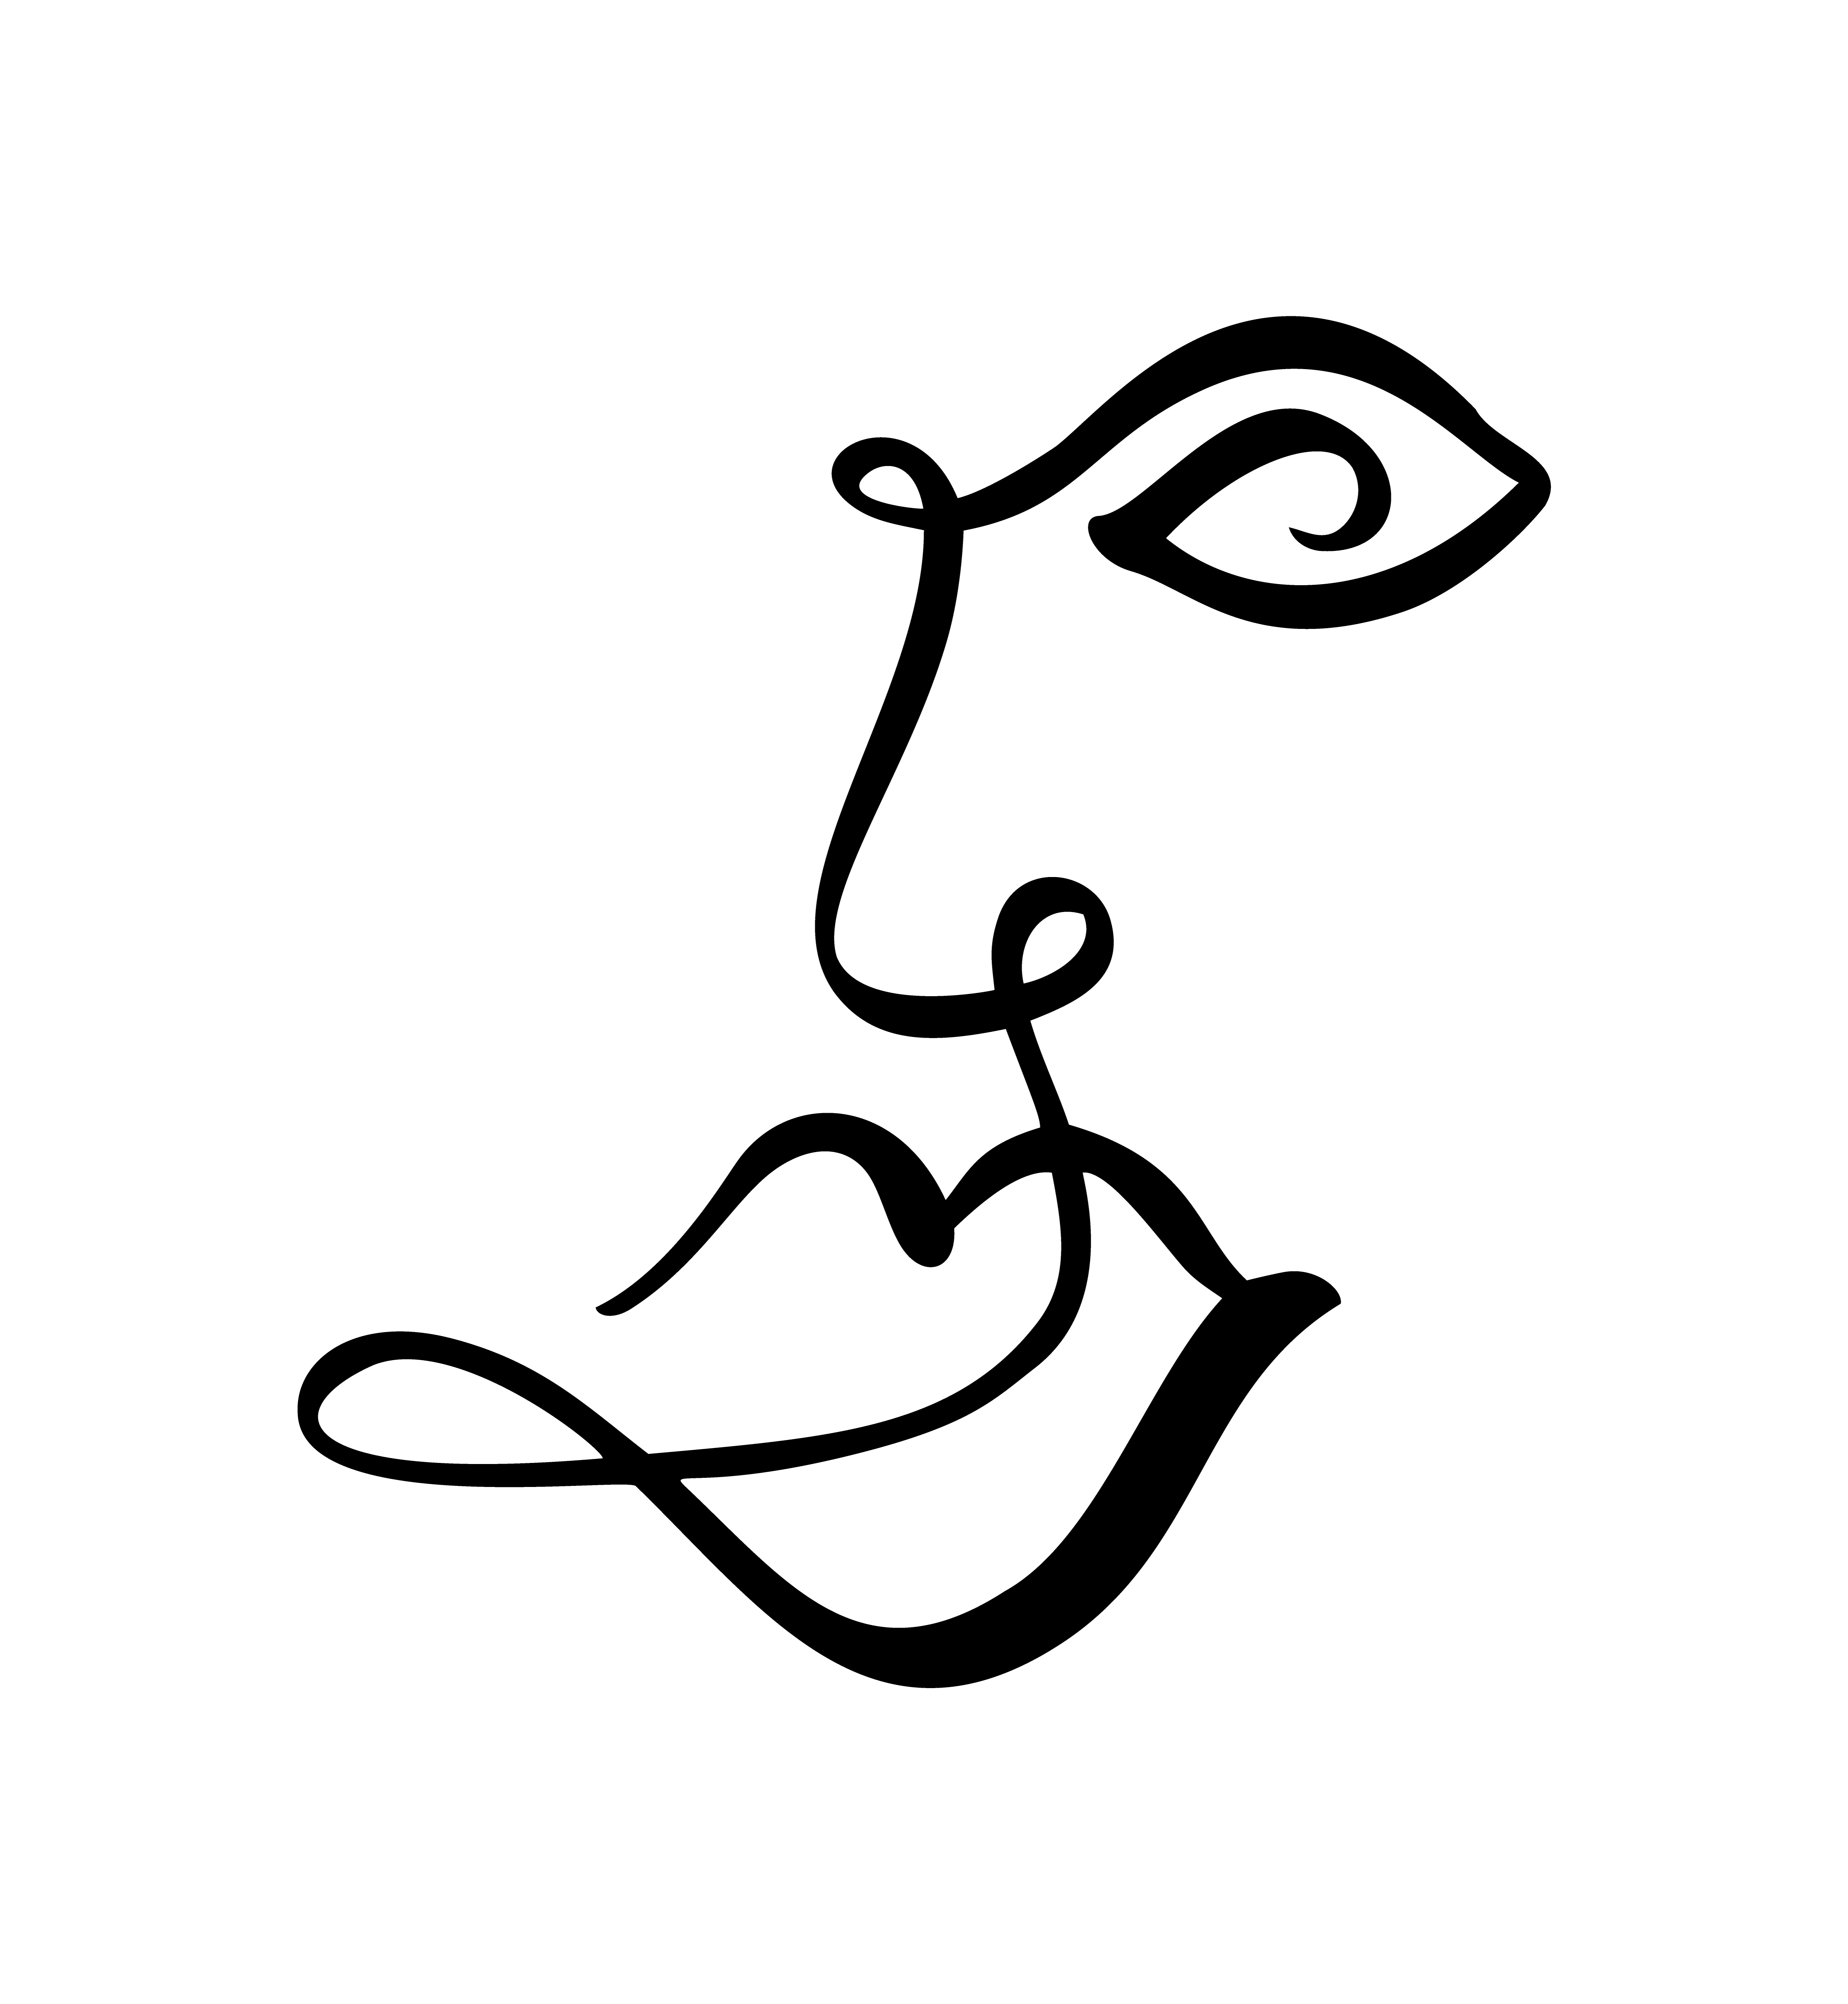 5071x5500 Continuous Line, Drawing Of Woman Face, Fashion Minimalist Concept